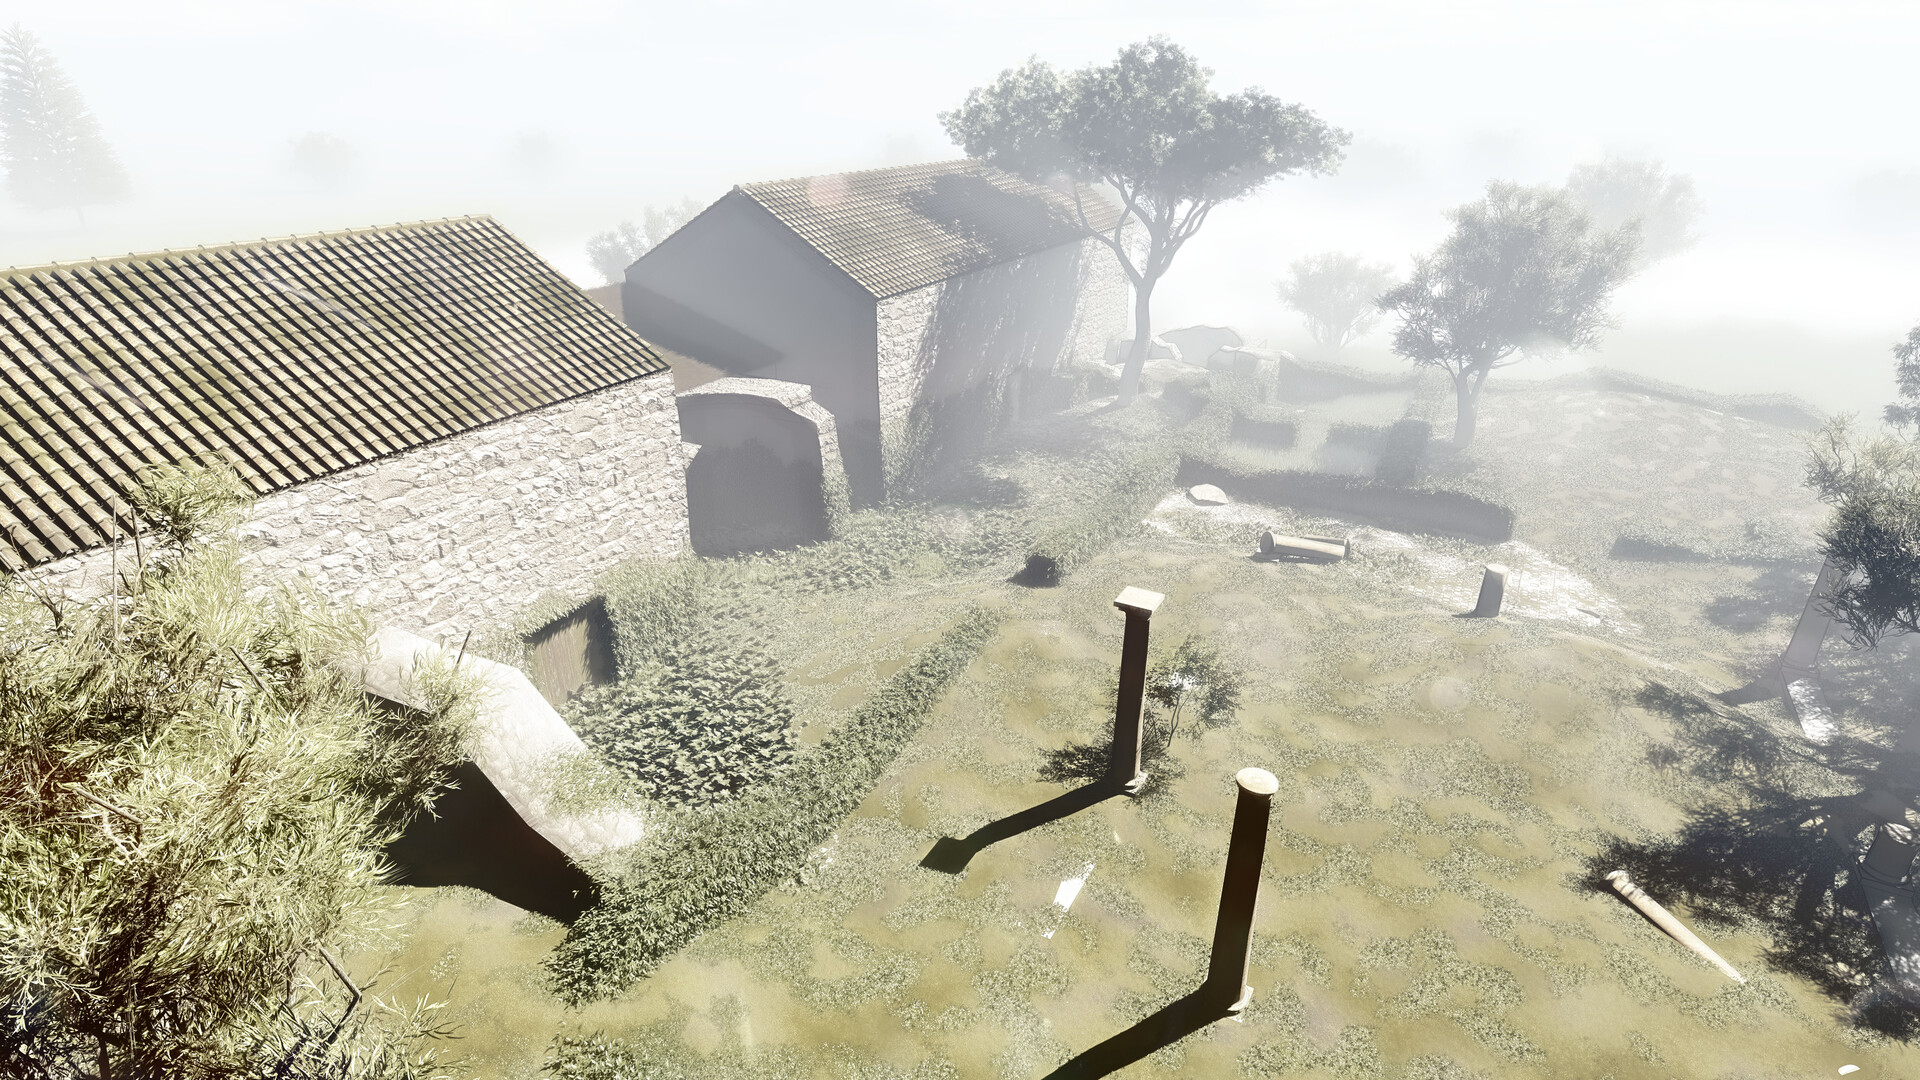 Phase 2 - Ruin of the Roman Villa